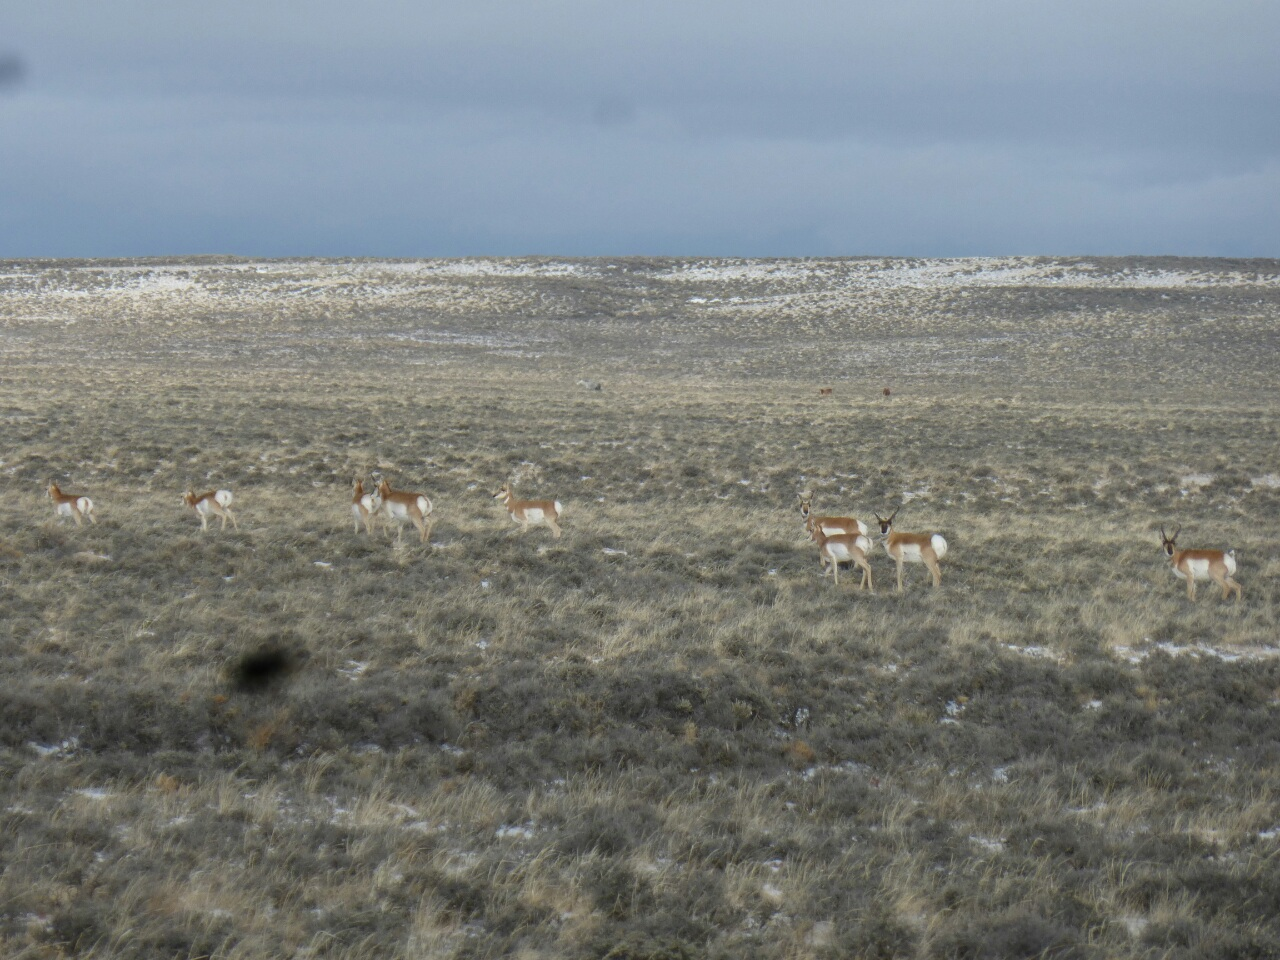 Antelopes. Herbert the black smudge makes a guest appearance, looks like he has family now, there's two... no 3 of them!